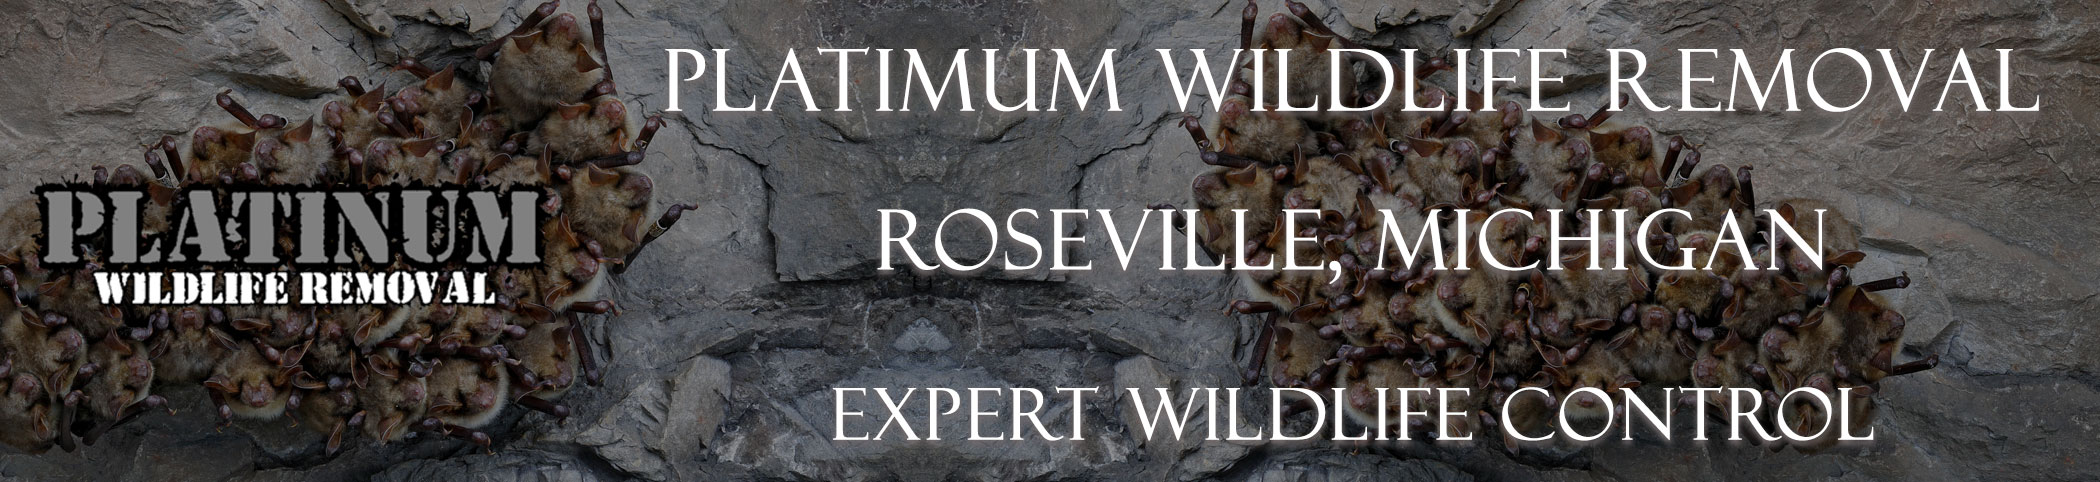 Roseville-Platinum-Wildlife-Removal-michgan